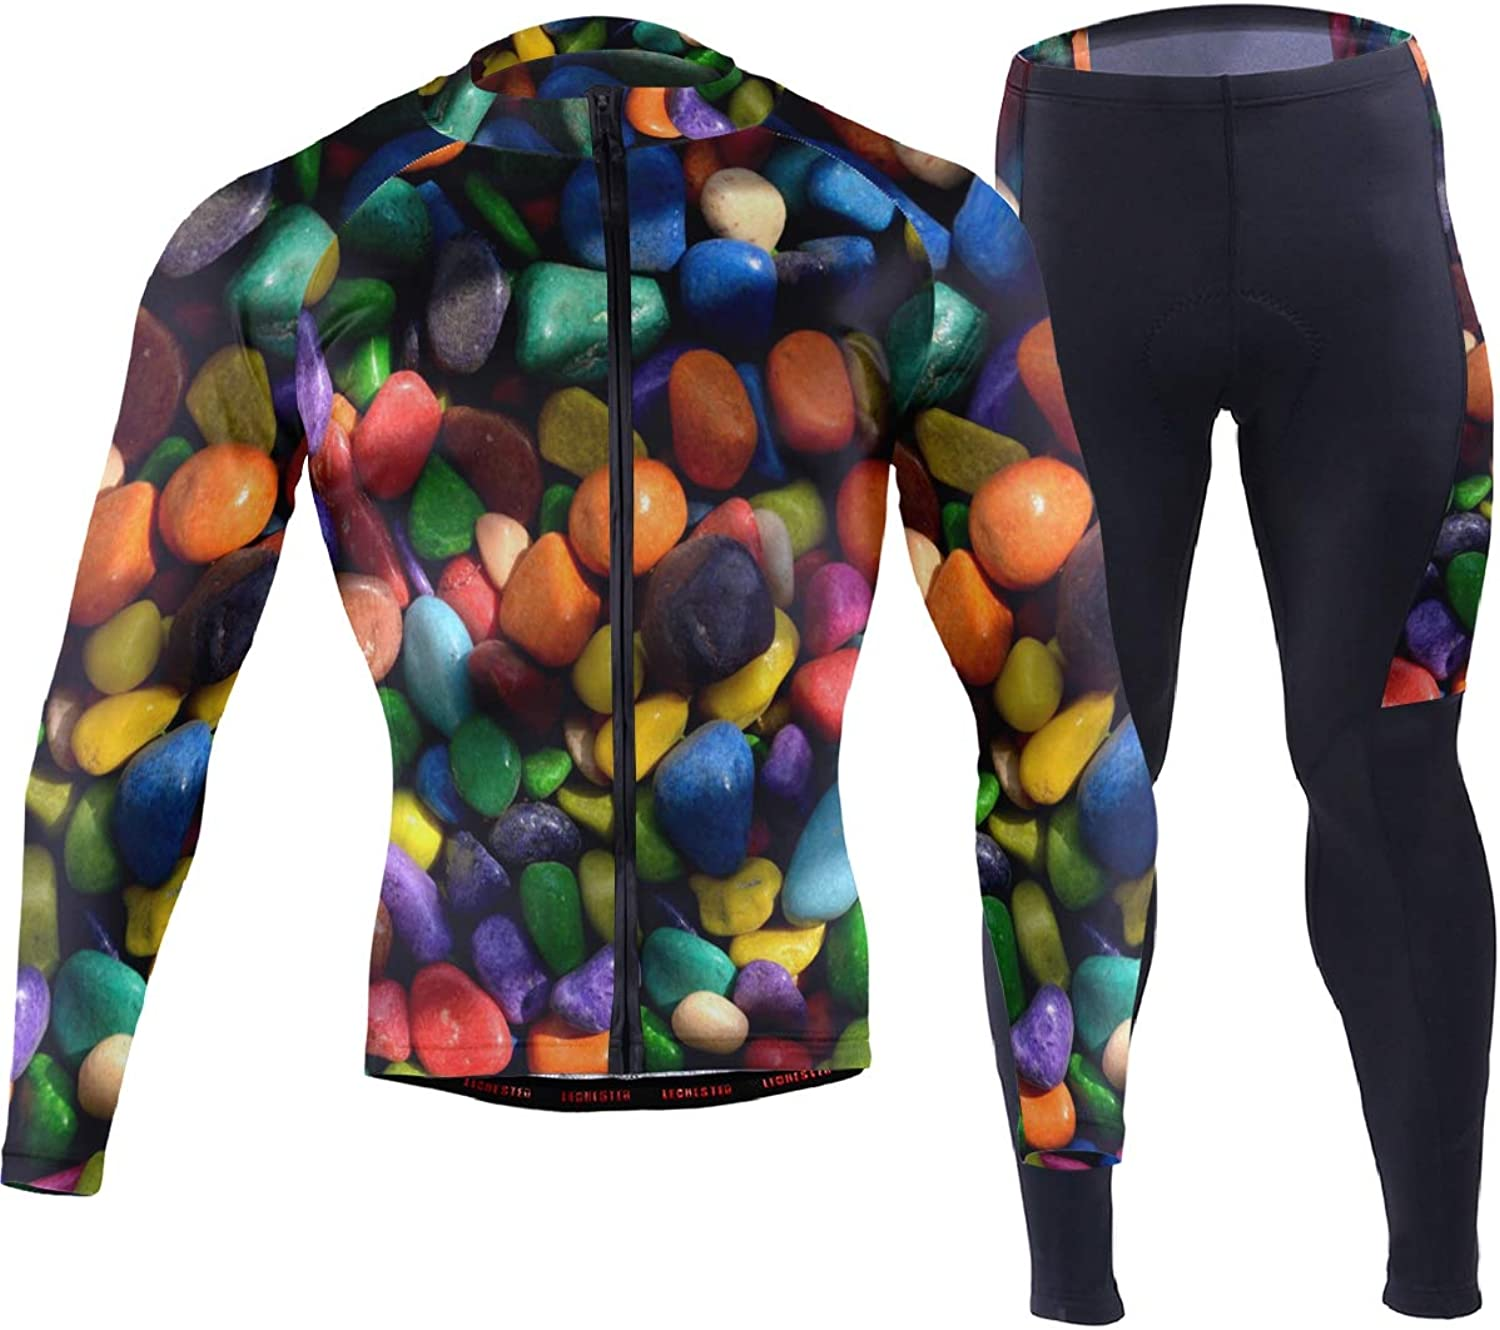 FAJRO colorful Rock Stones Sportswear Suit Bike Outfit Set Breathable Quick Dry 3D Padded Pants